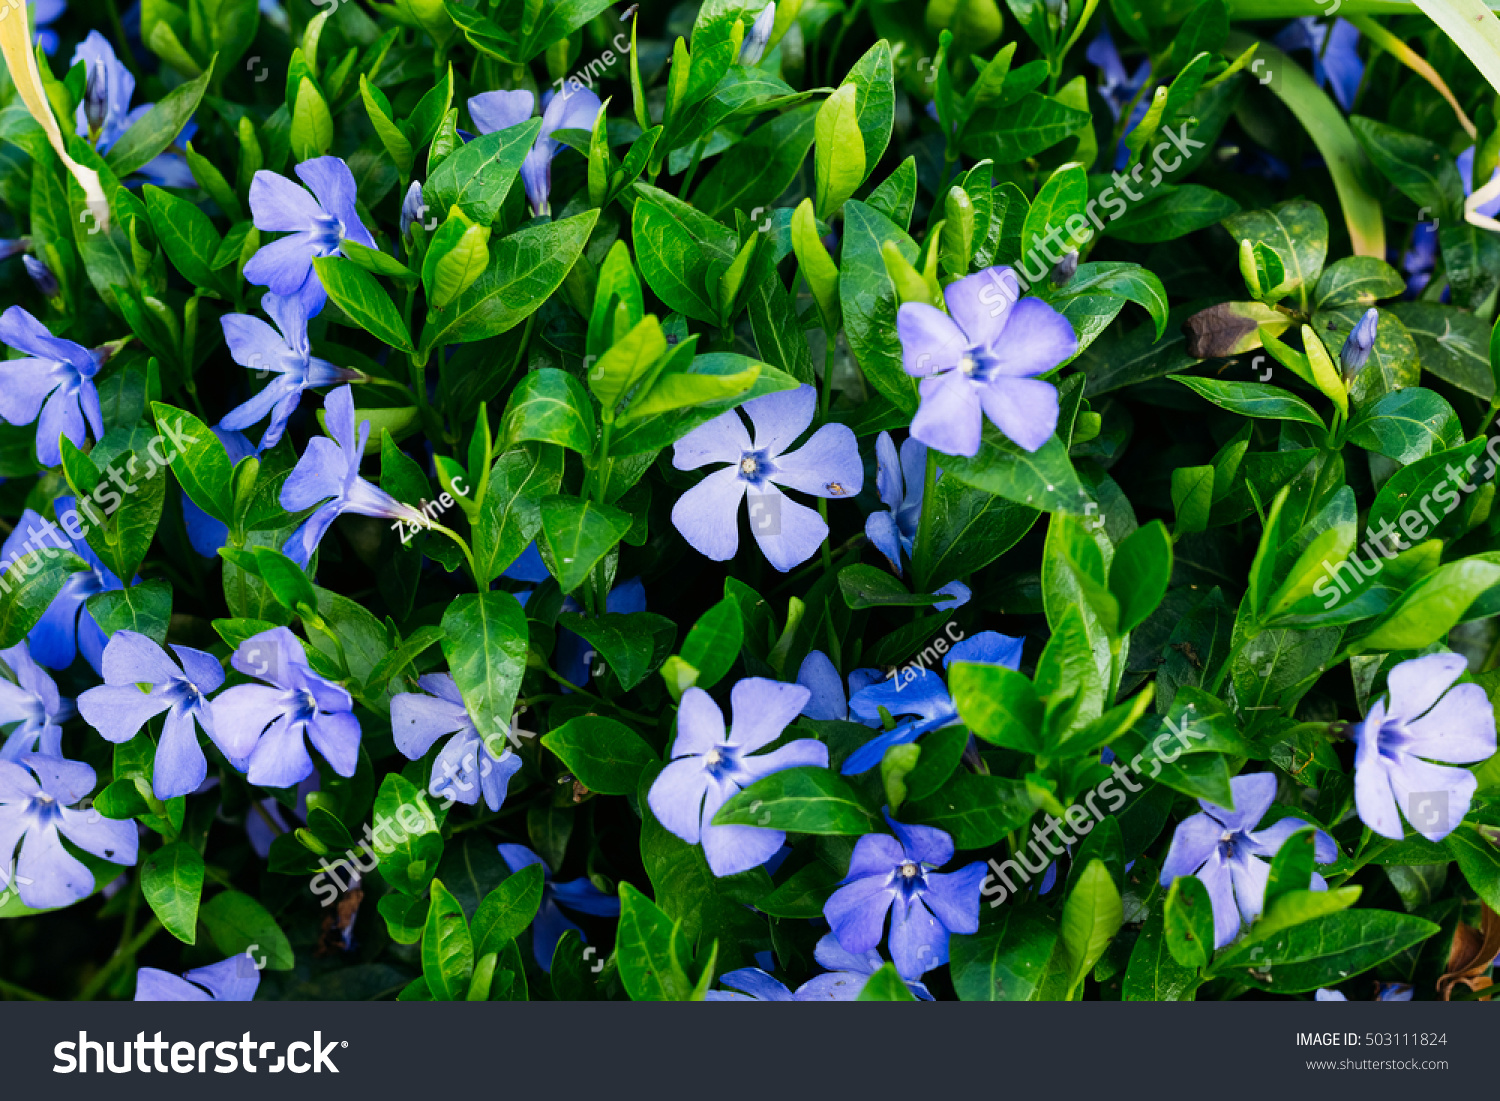 Periwinkle plant green leaves blue flowers stock photo royalty free periwinkle plant with green leaves and blue flowers five petalled izmirmasajfo Choice Image